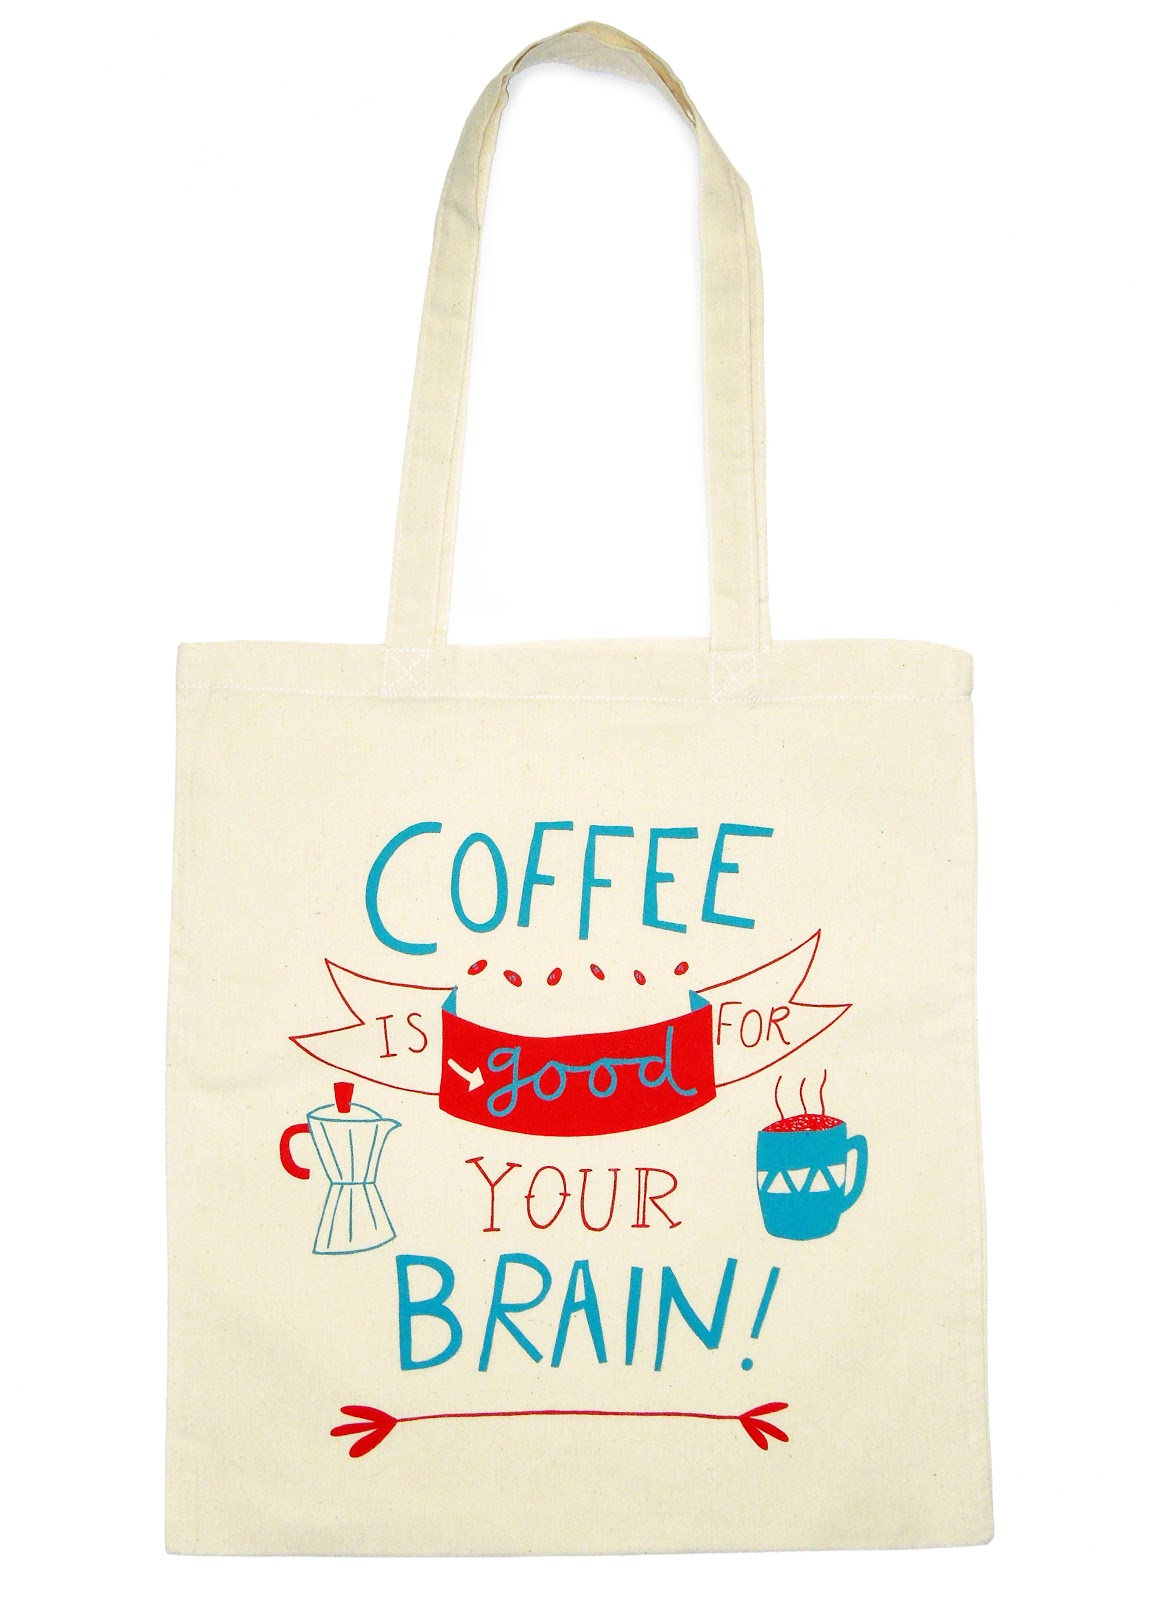 Tote bag template illustrator - Her Work Includes Hand Drawn And Screen Printed Illustration Zines Greetings Cards Stationery Limited Edition Prints Tote Bags And Accessories